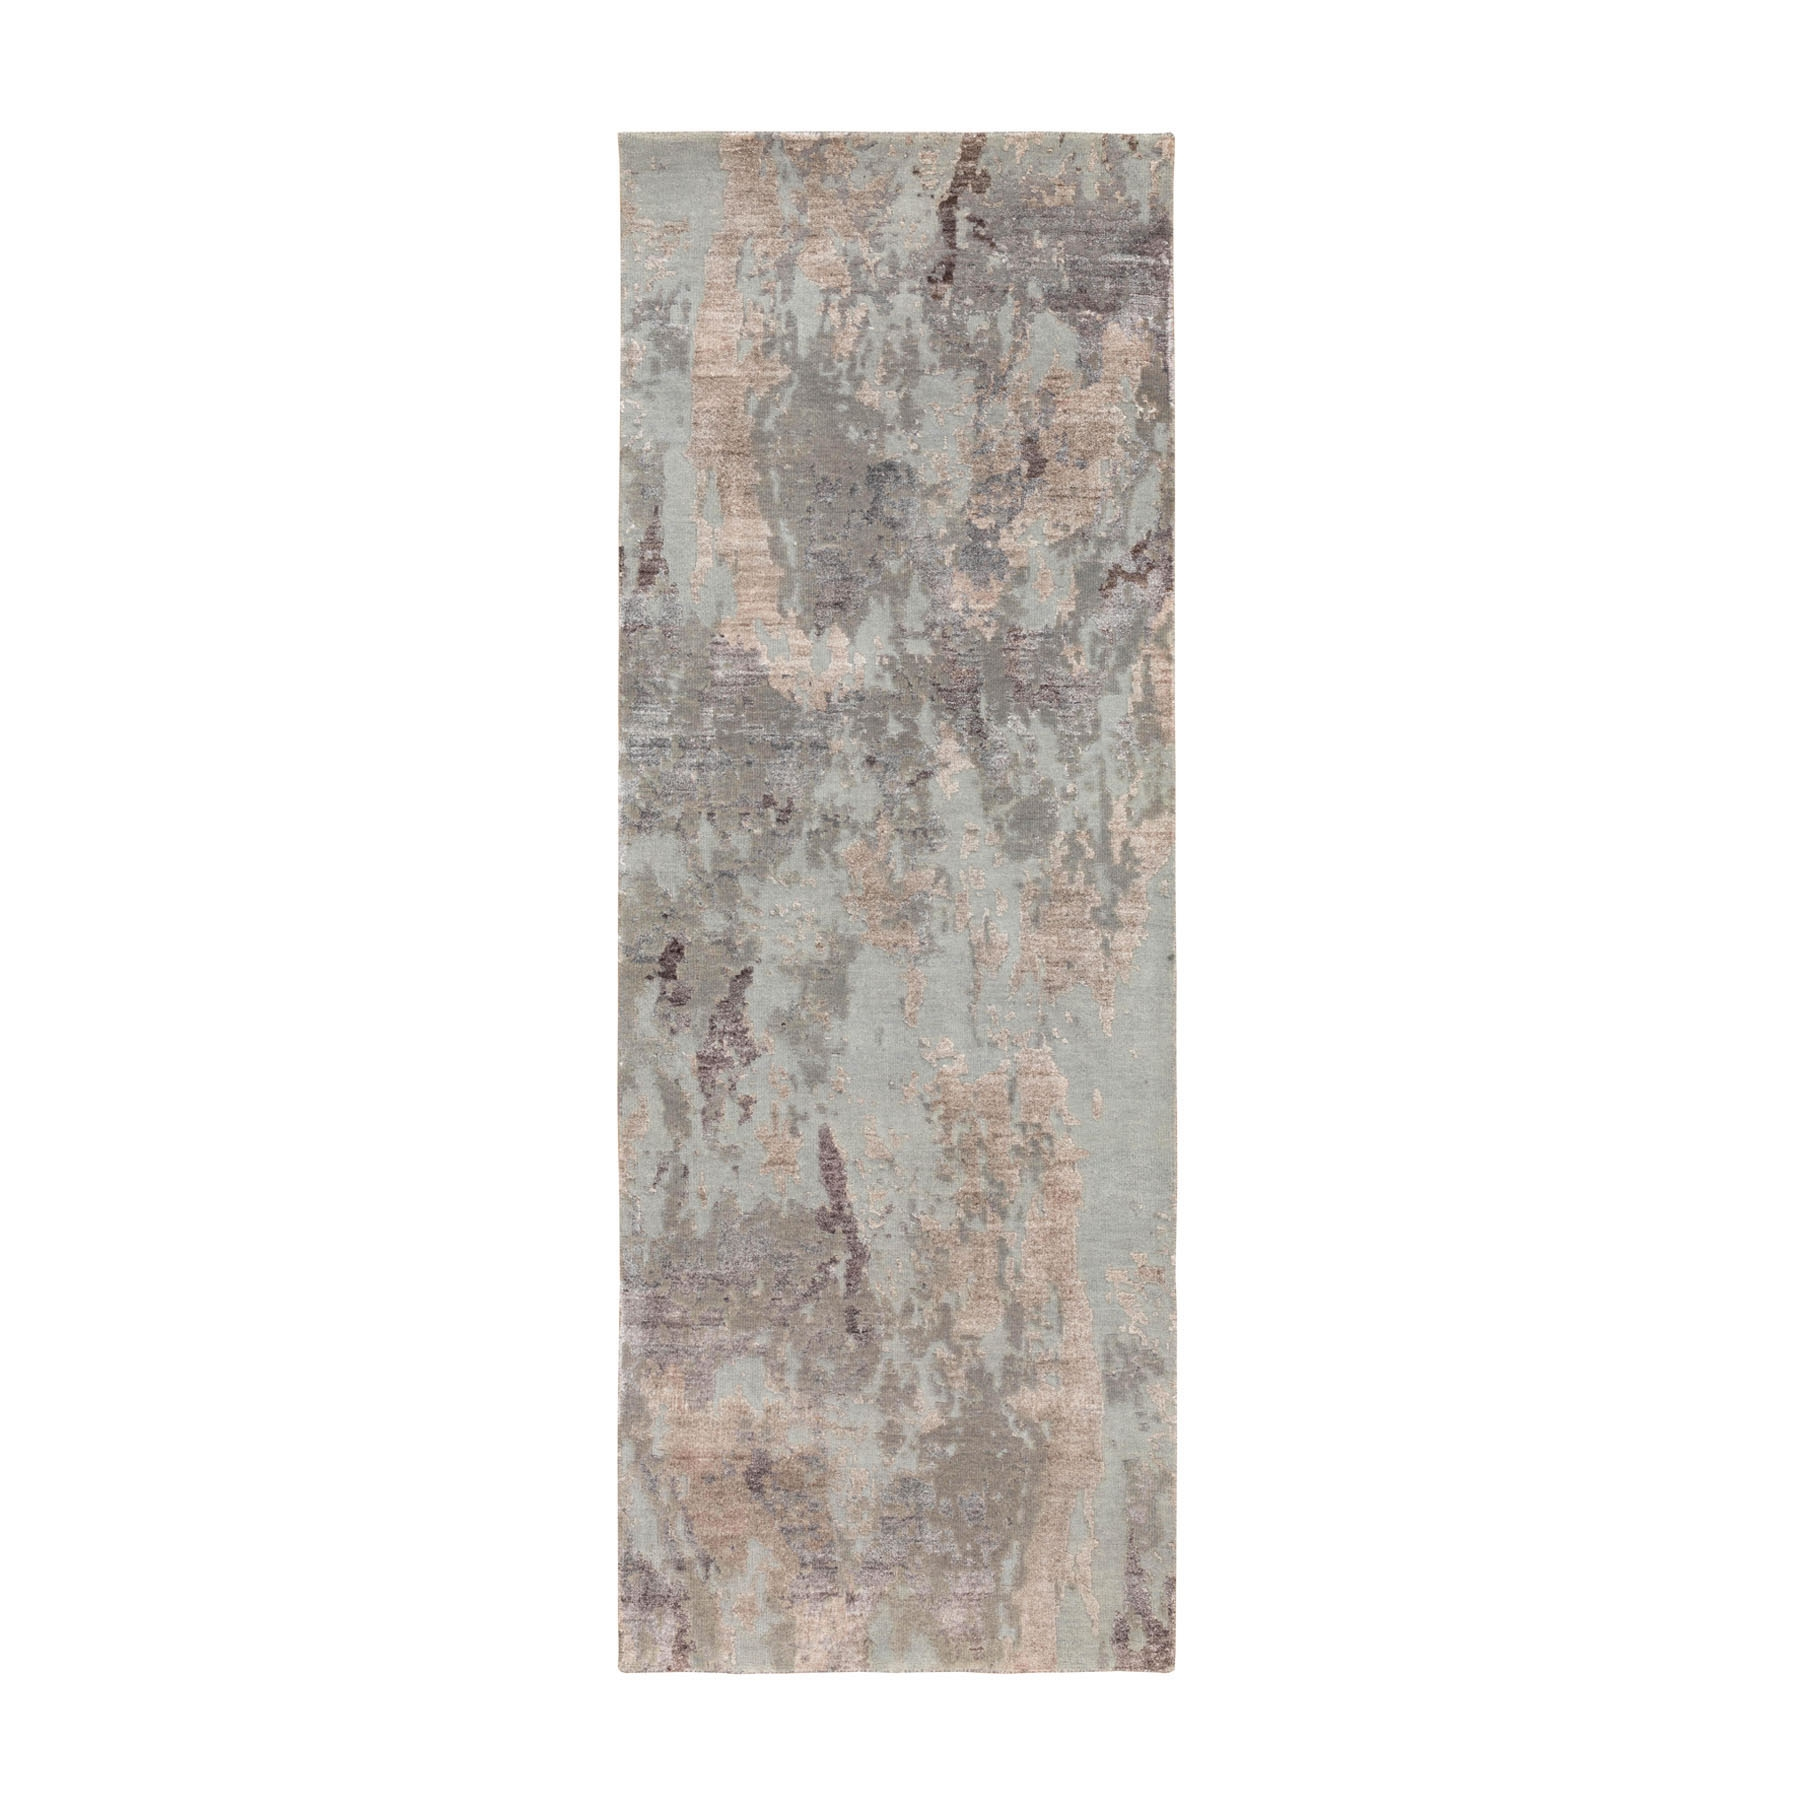 "8'x2'9"" Gray Textured Pile Abstract Design Wool and Silk Runner Hand Knotted Oriental Rug"